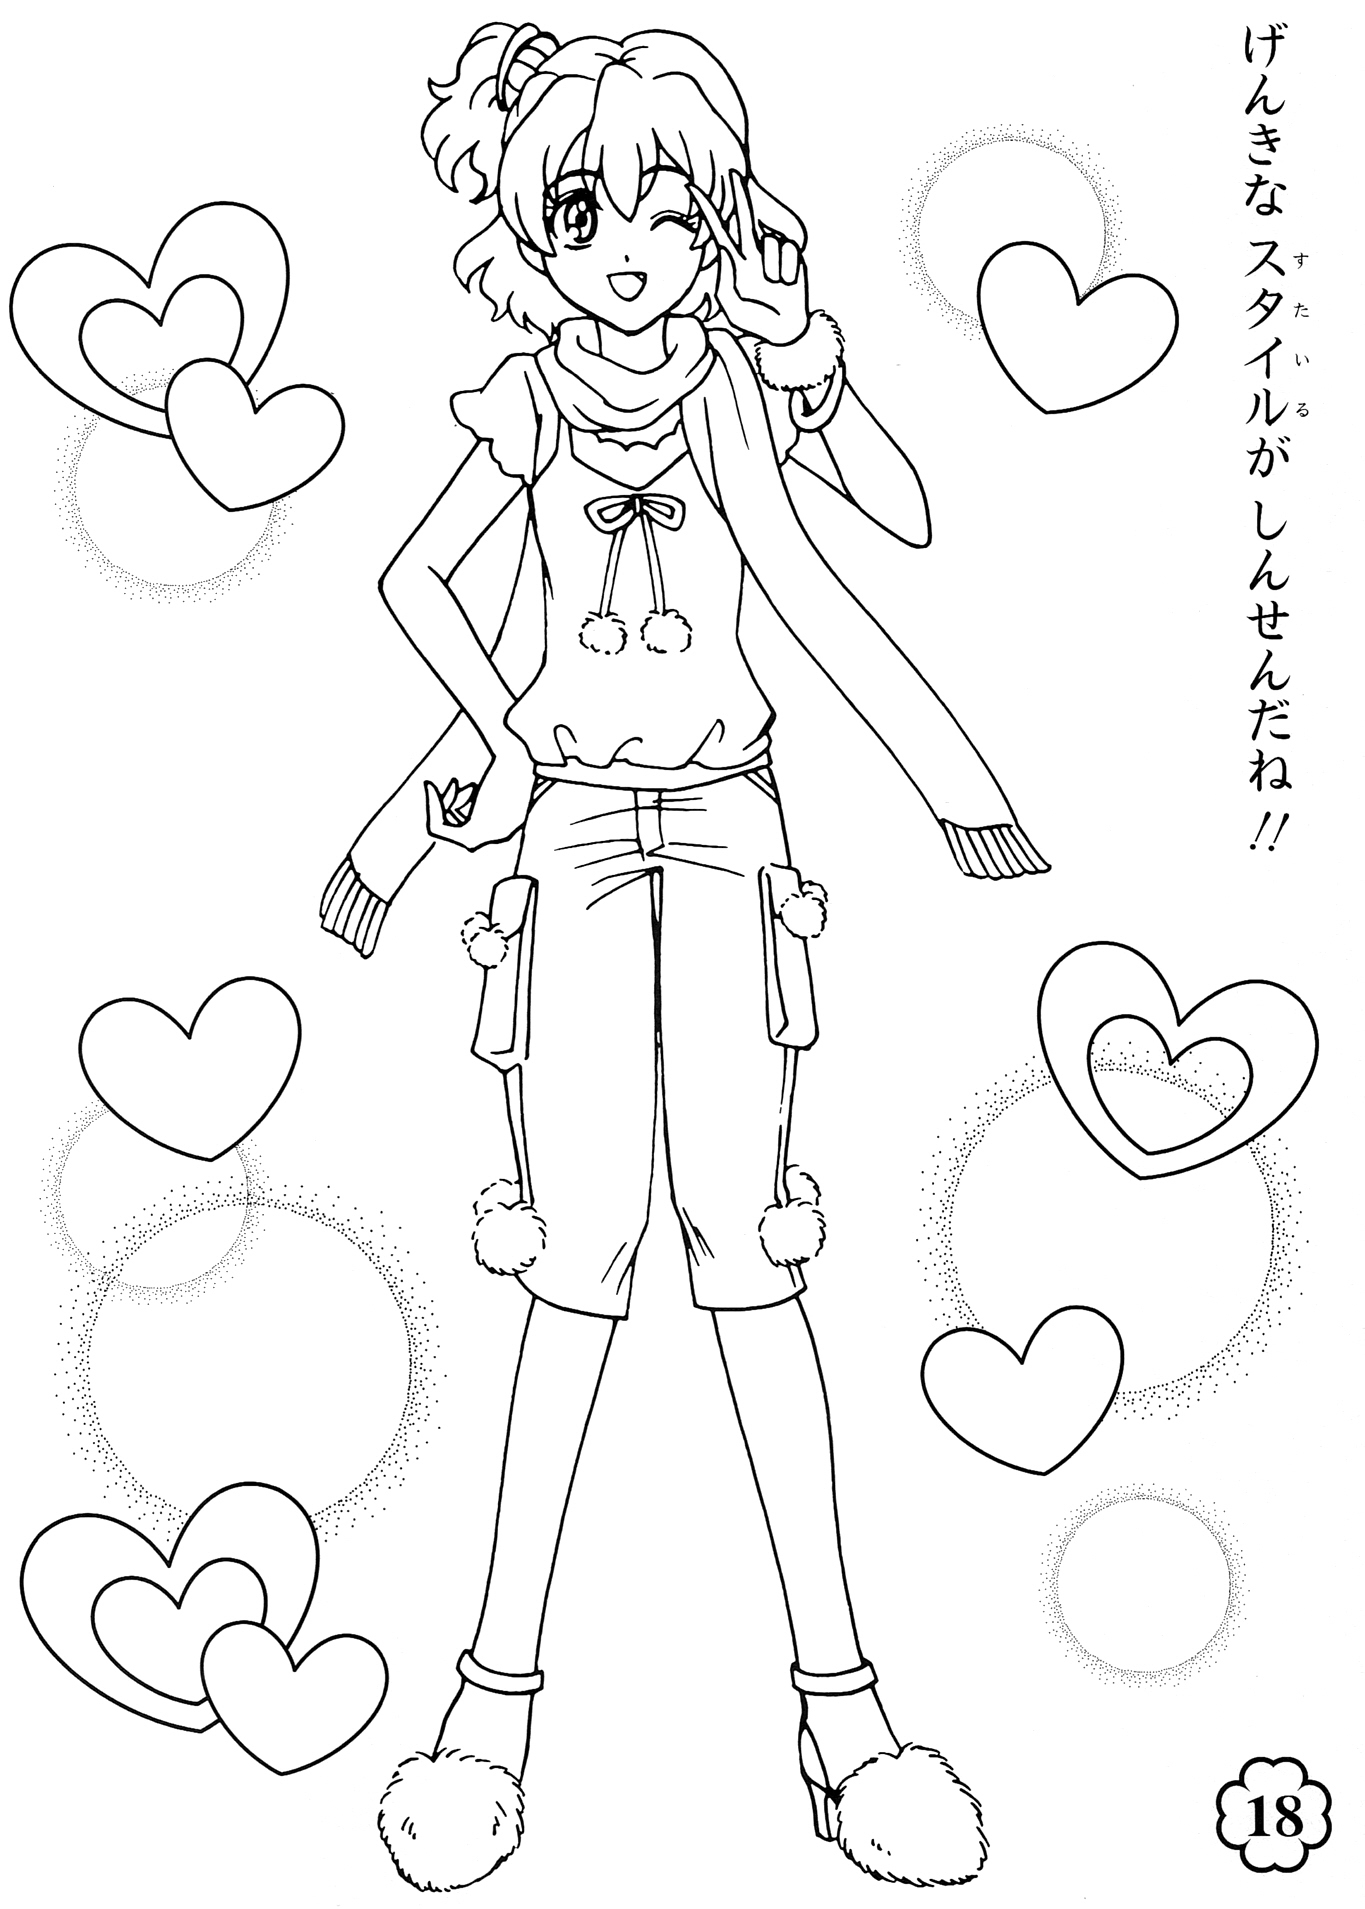 oasidelleanime precure coloring pages - photo #27